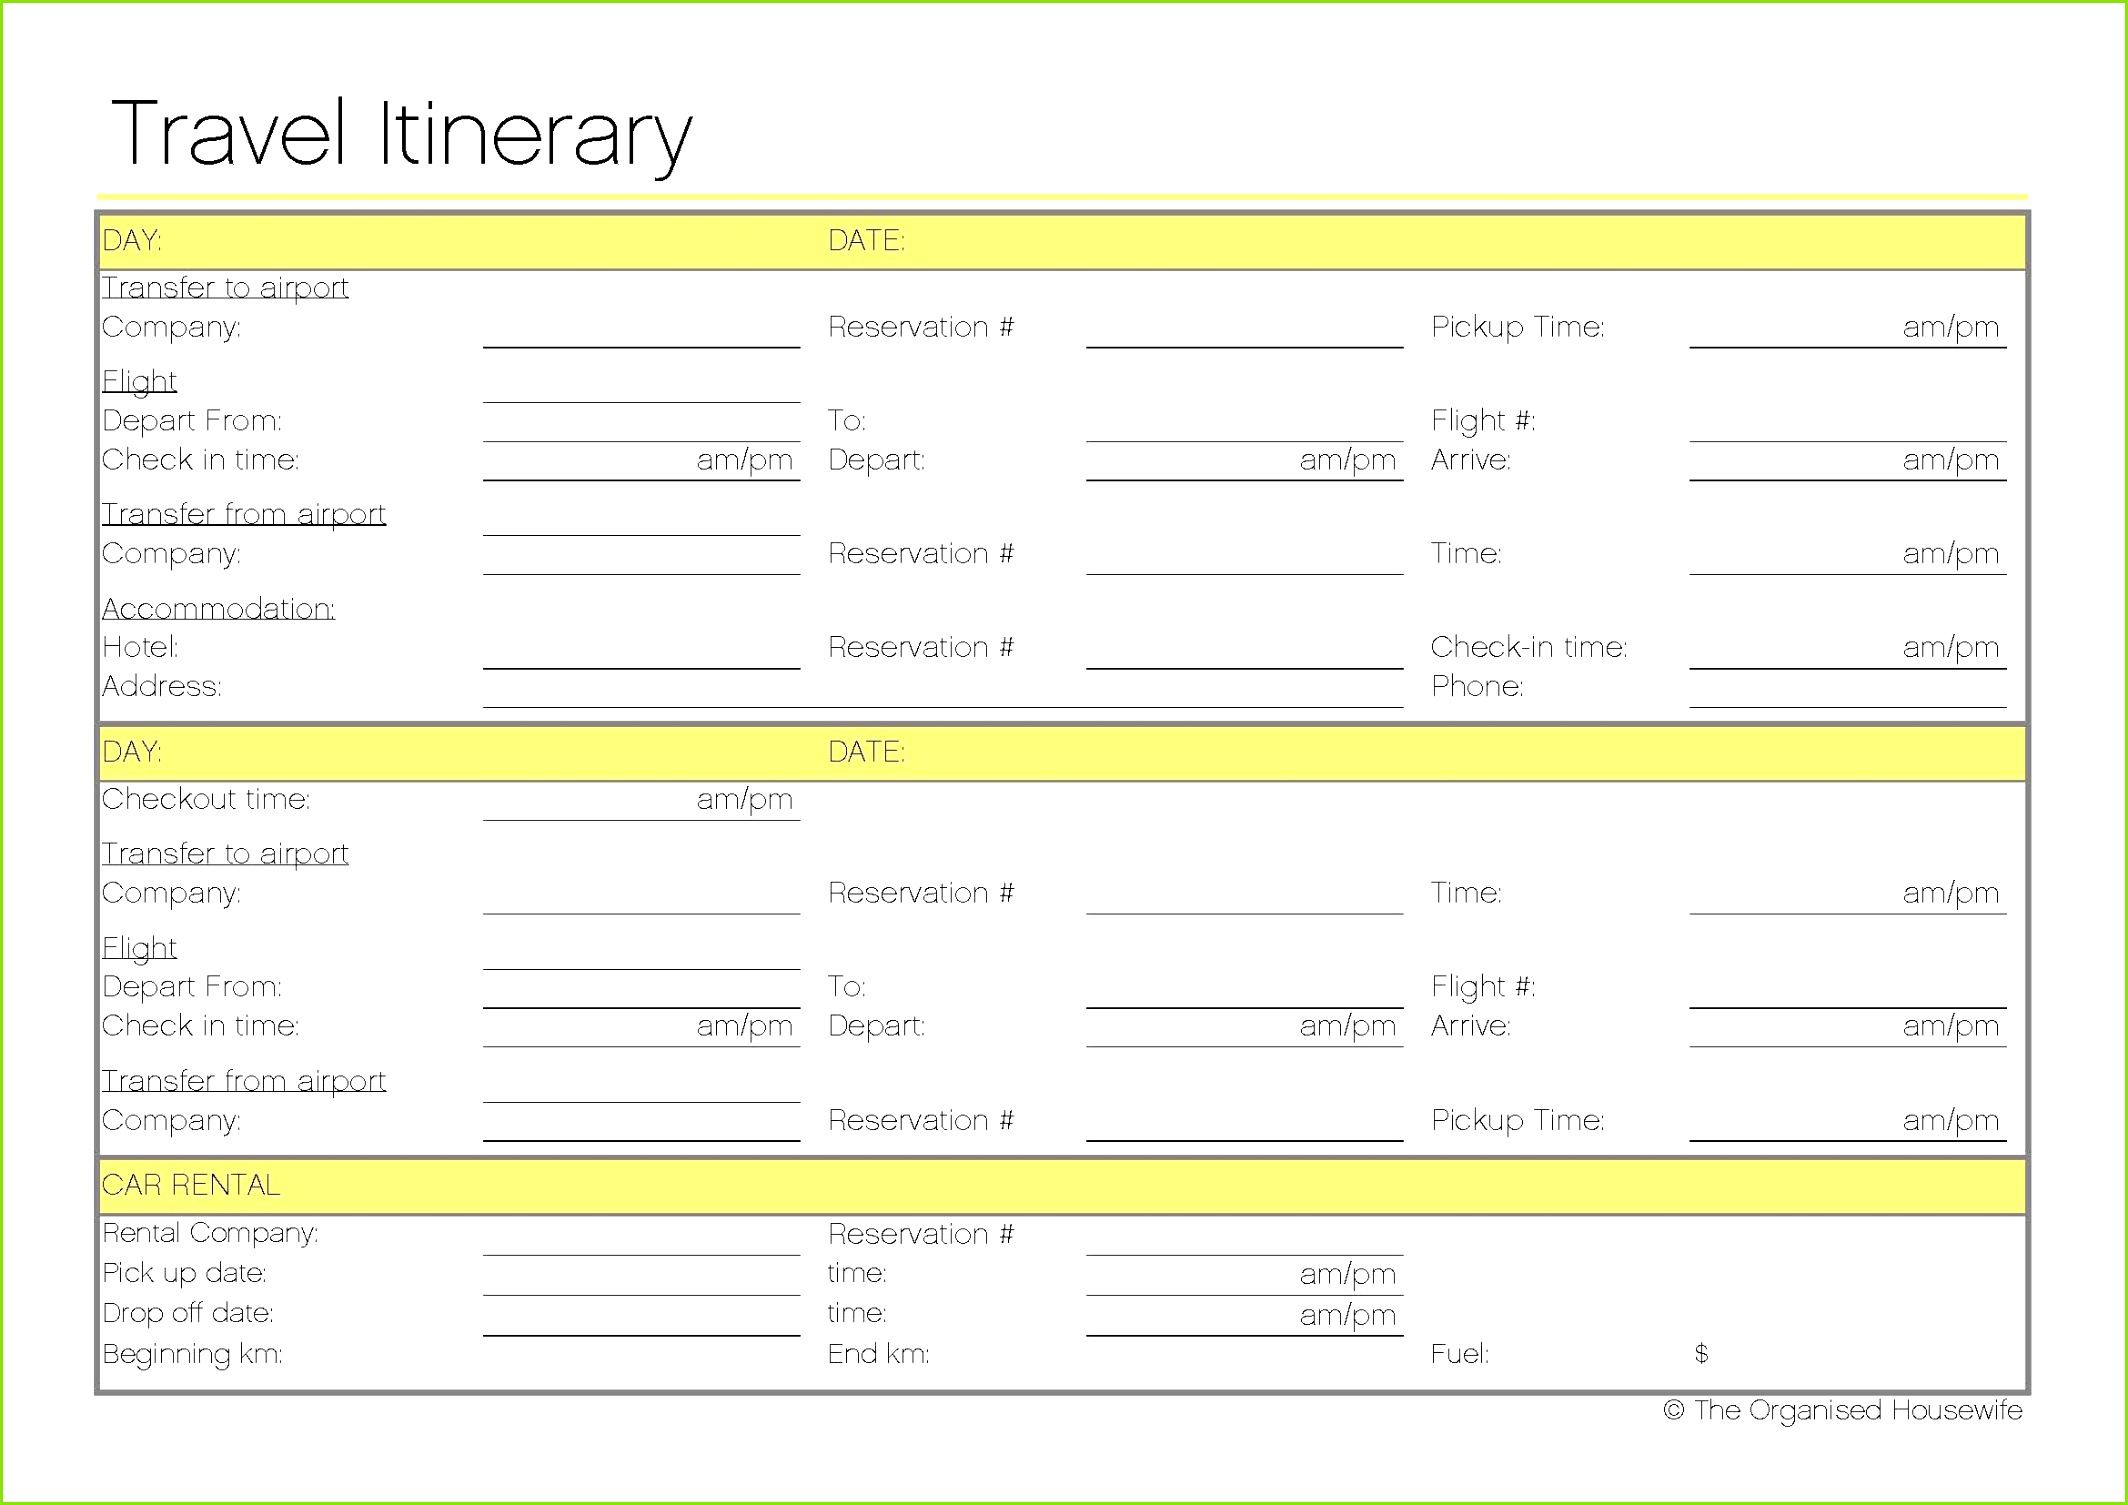 Travel Itinerary Template Travel Checklist Travel Packing Travel Guide Travel Planner